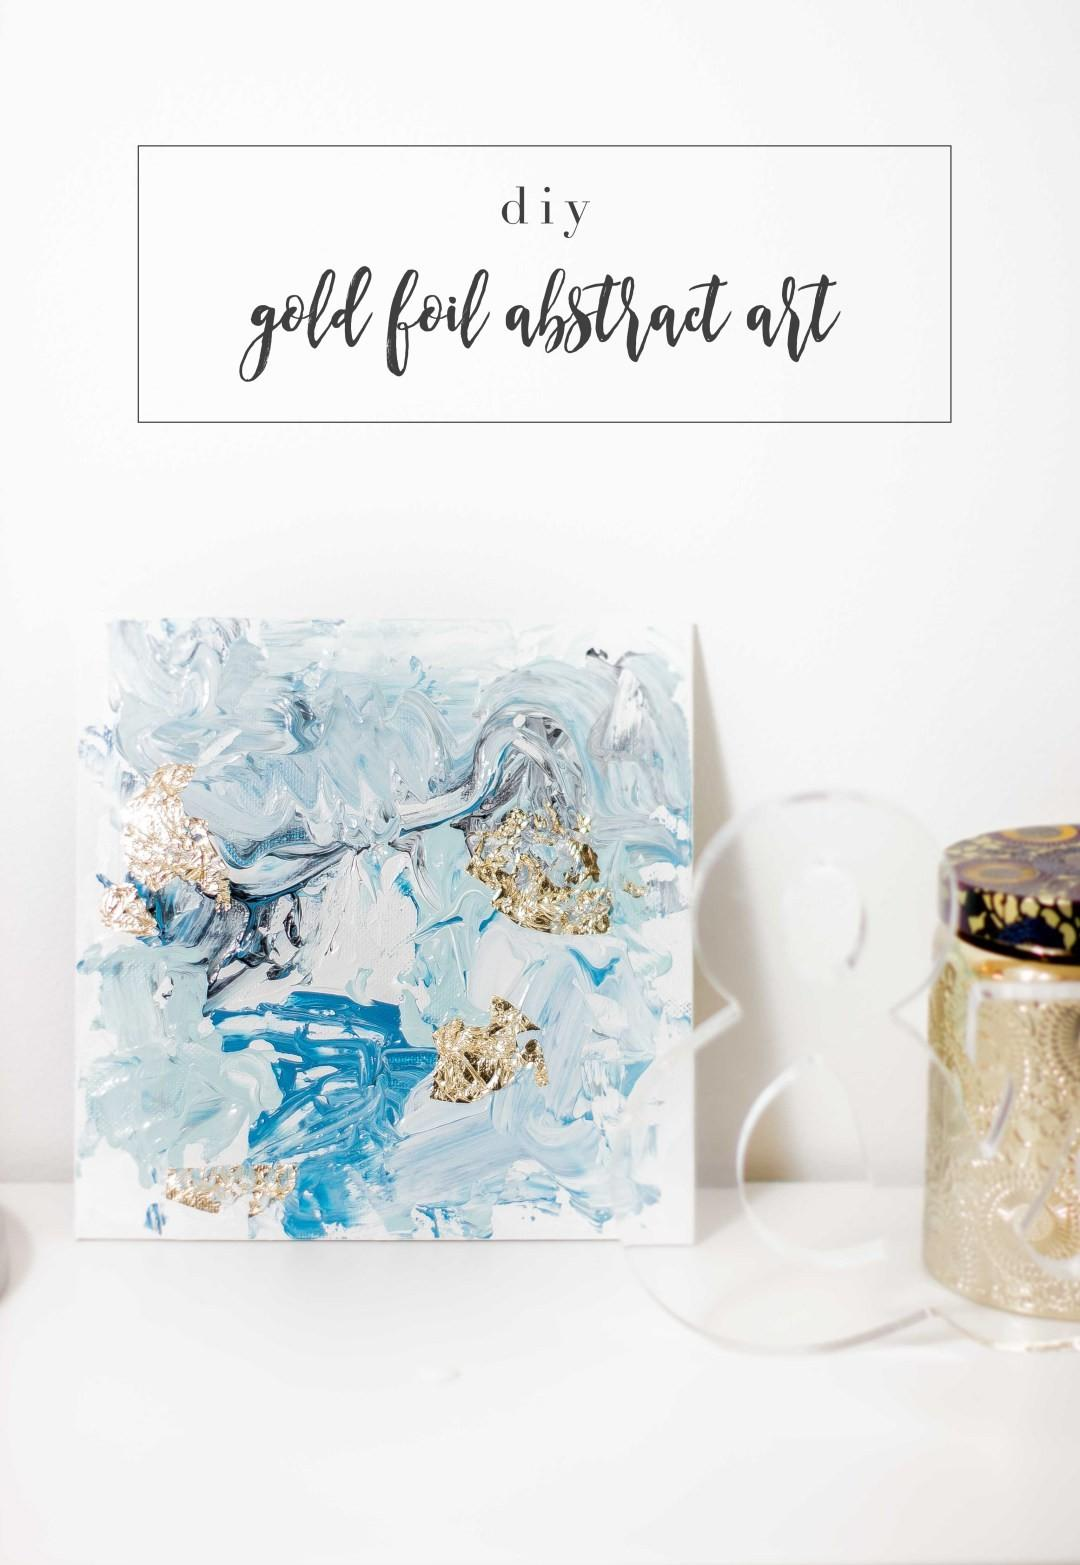 Essie Does Summer Diy Abstract Gold Foil Art